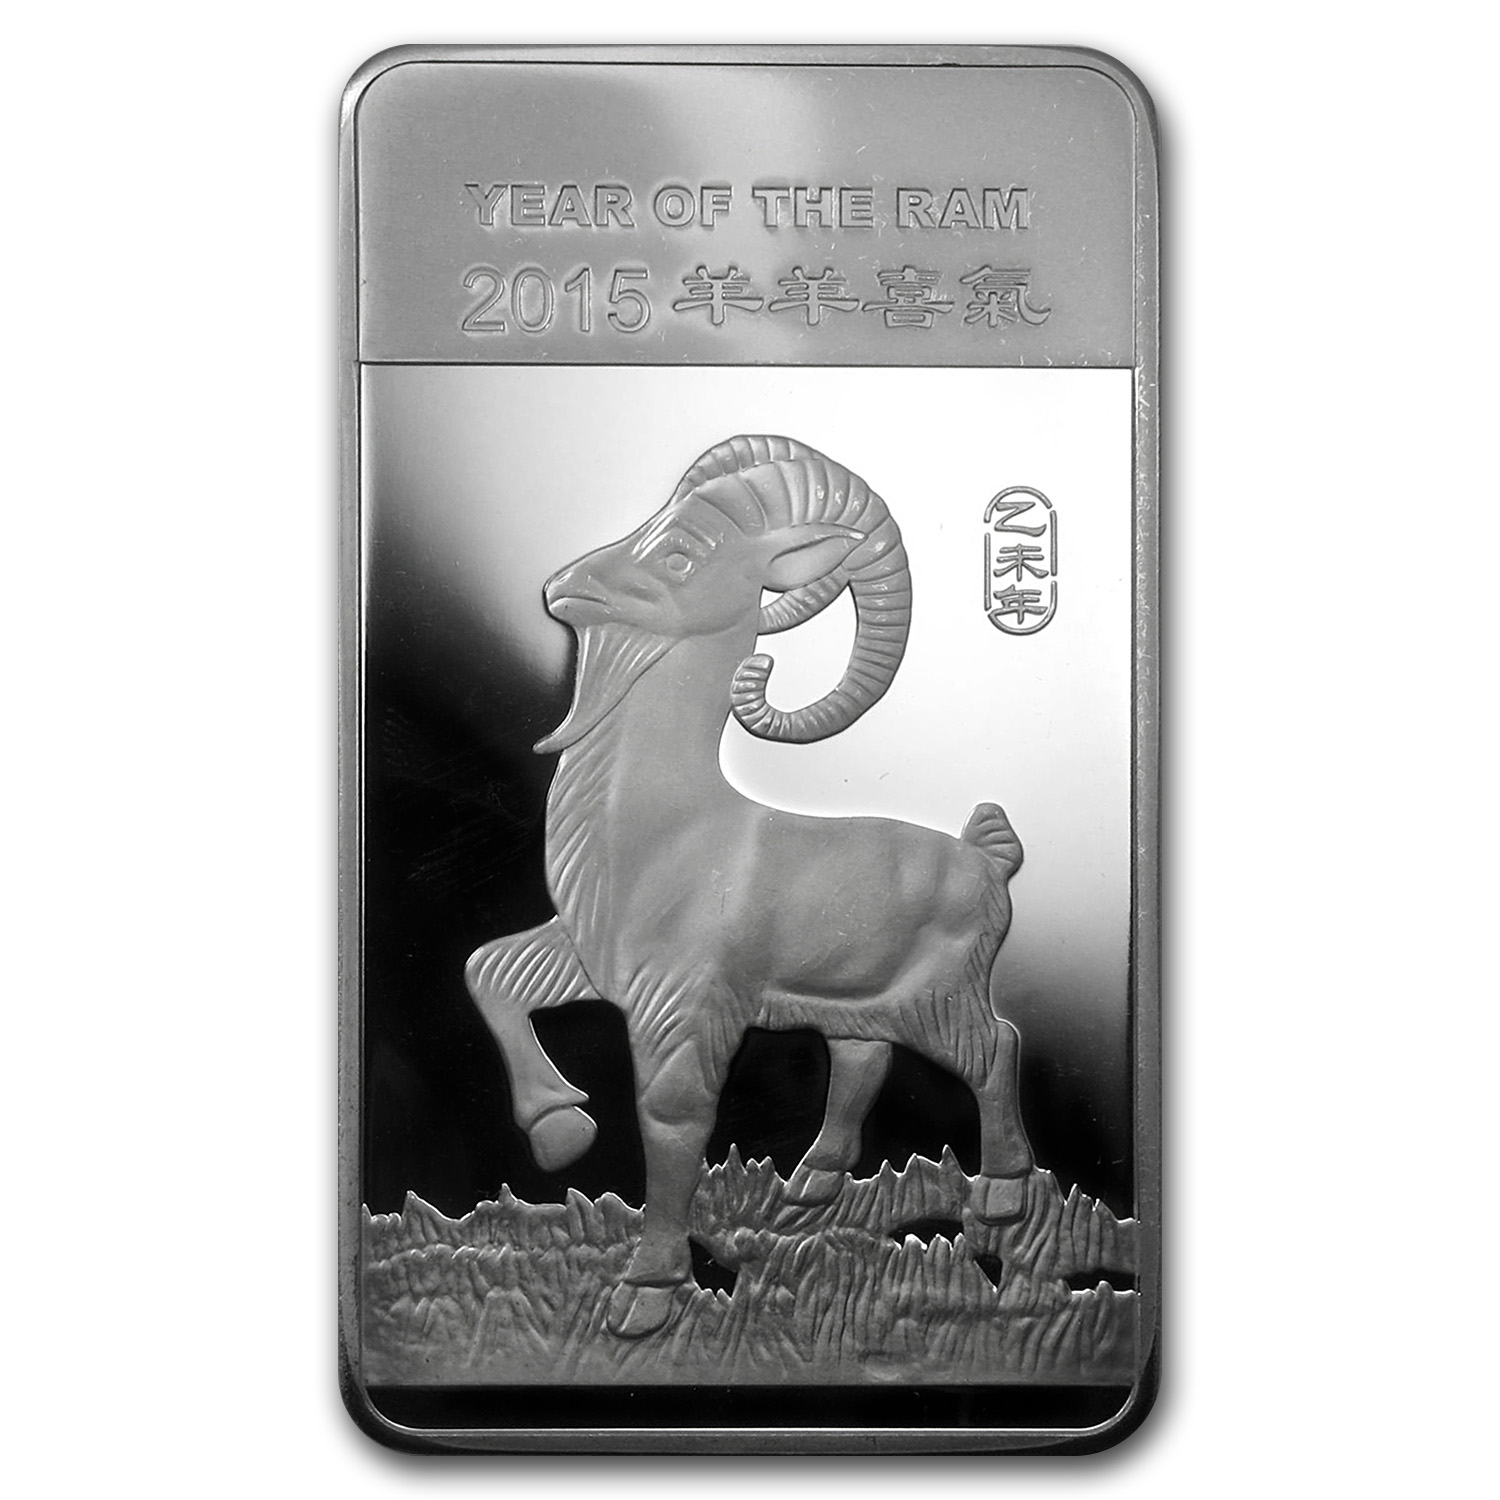 10 oz Silver Bar - APMEX (2015 Year of the Ram)